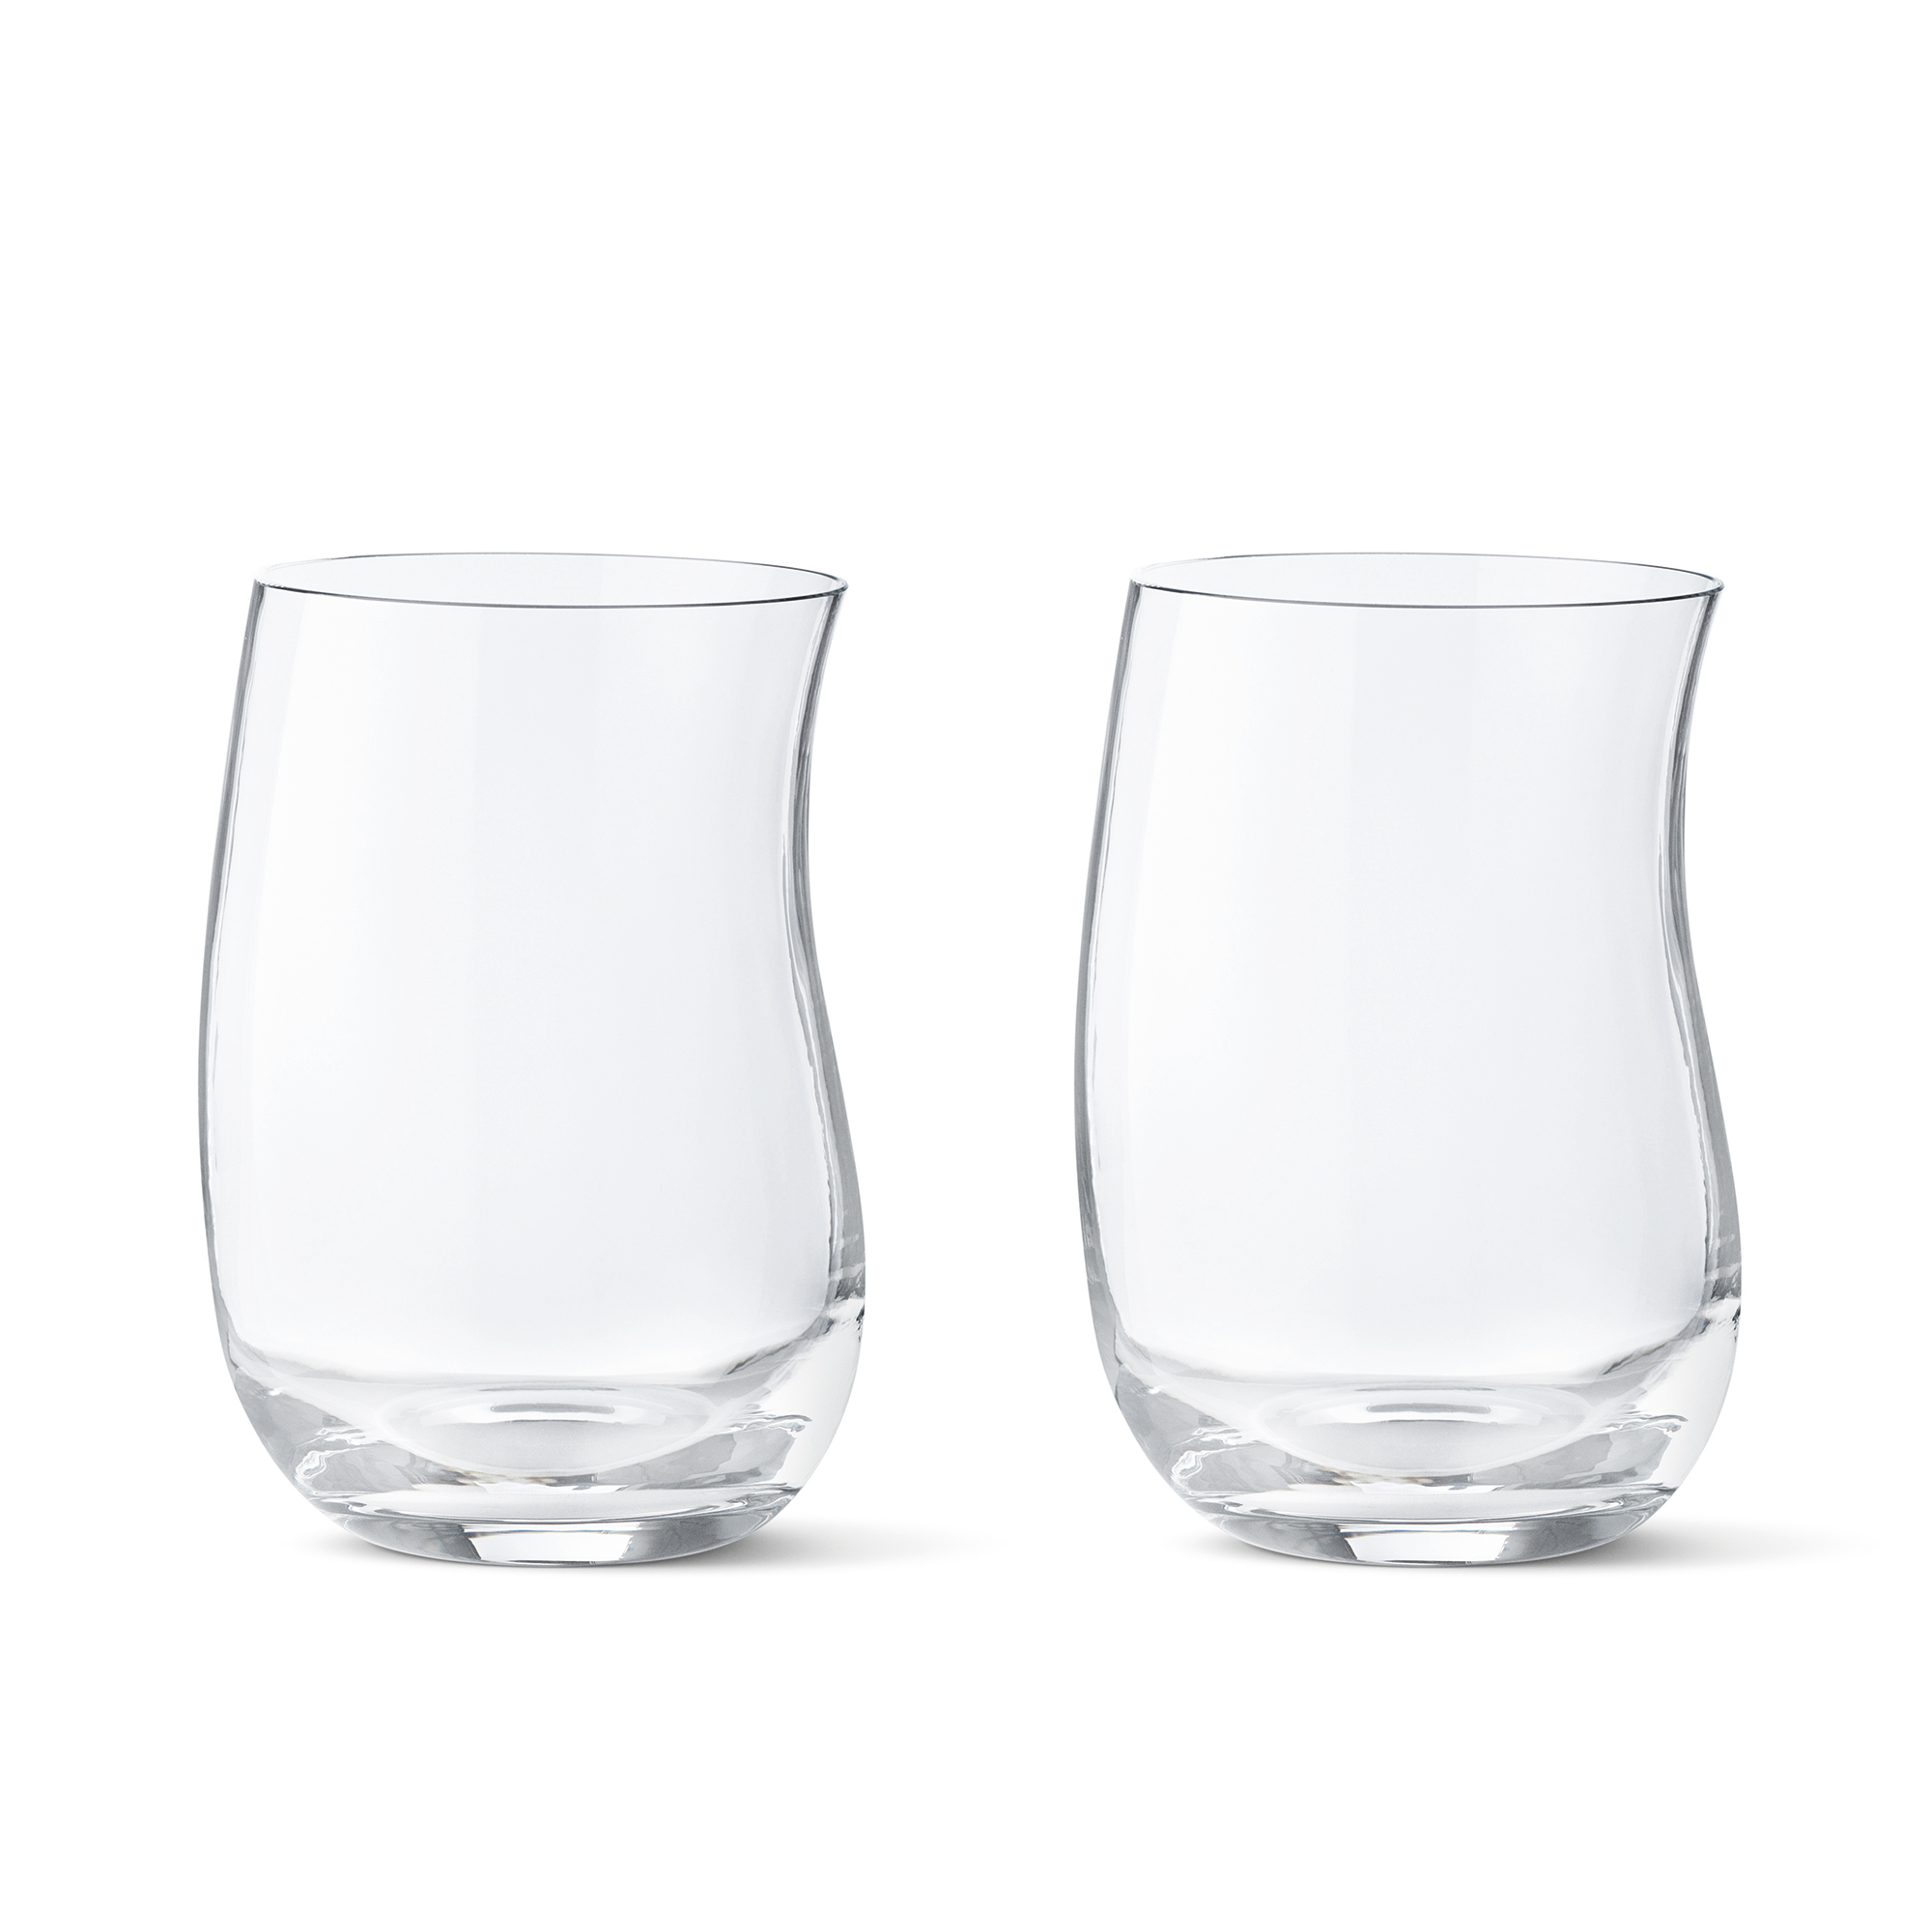 Georg Jensen Cobra Glass Tumblers, Set of 2